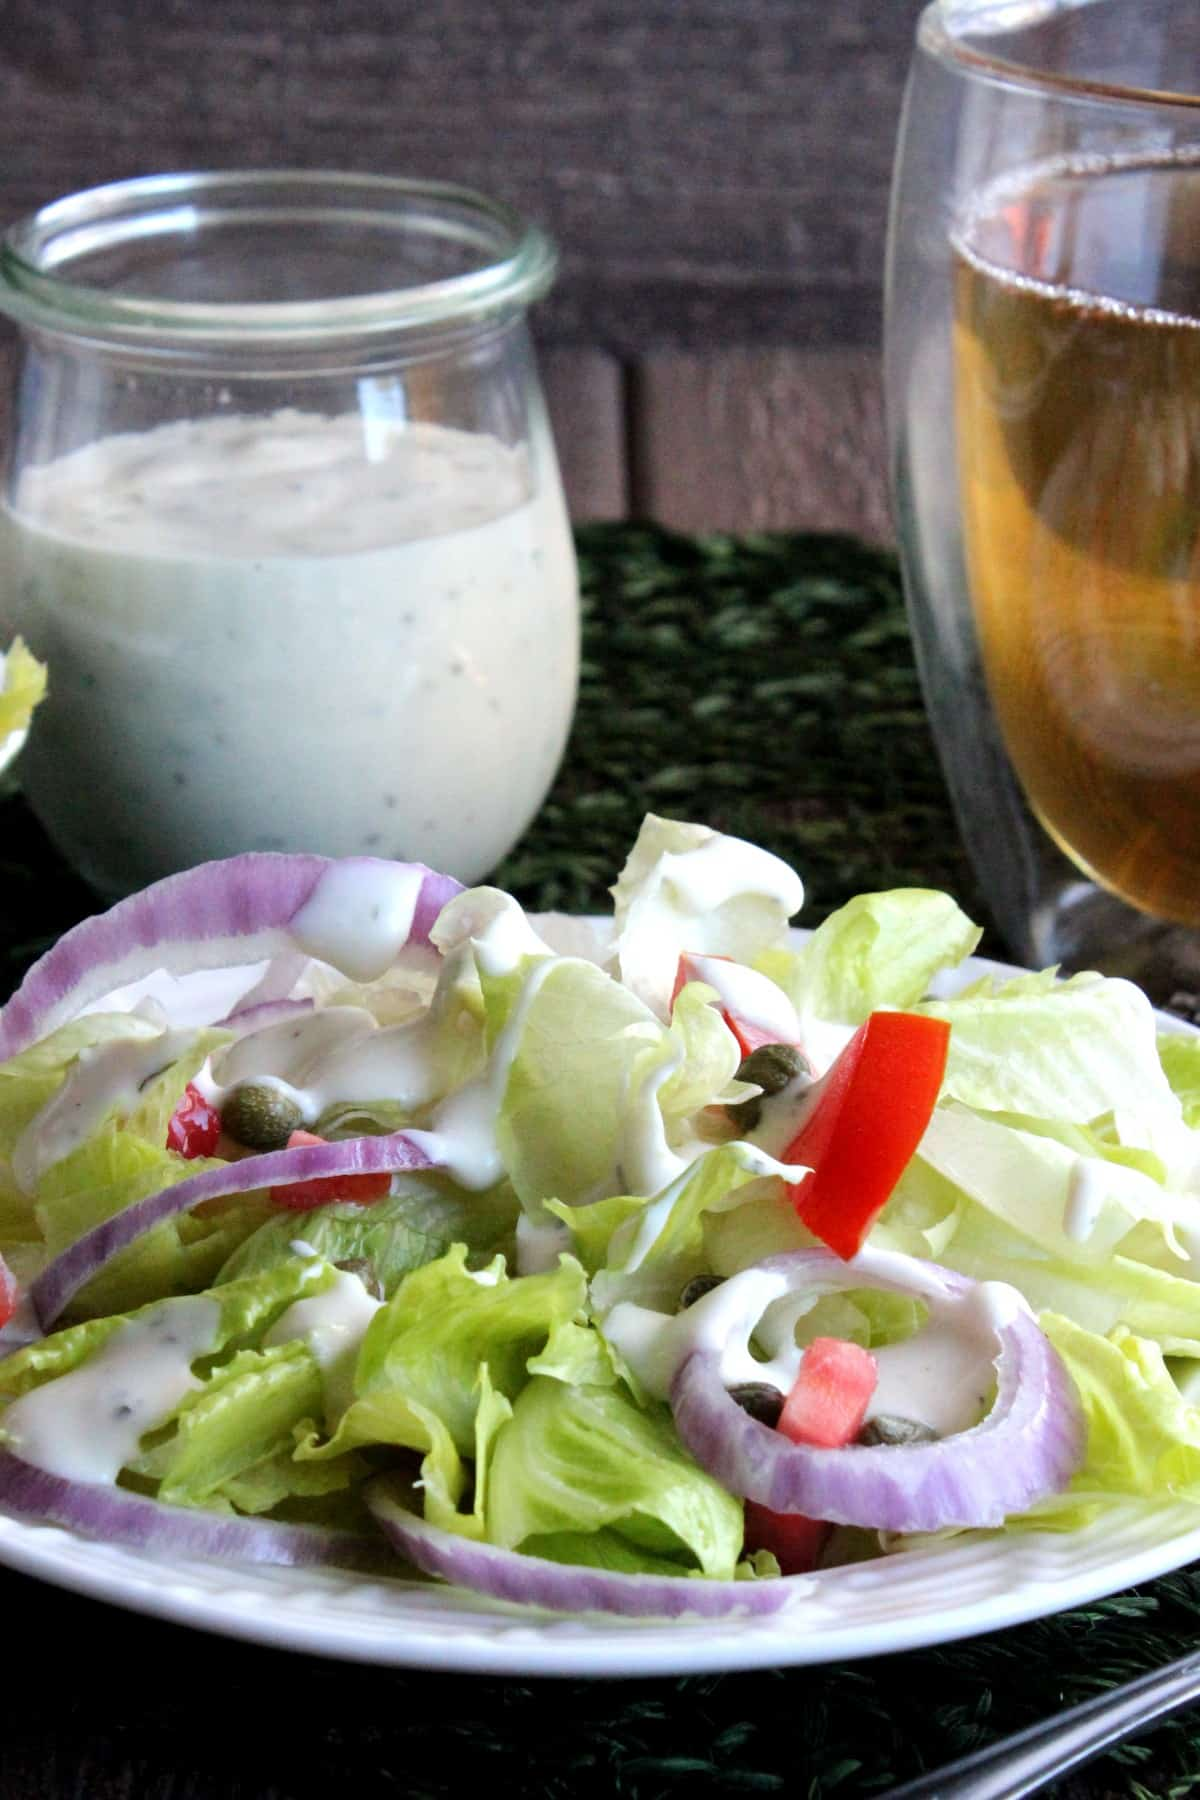 Plateful of a fresh salad drizzled with dairy free ranch dressing.